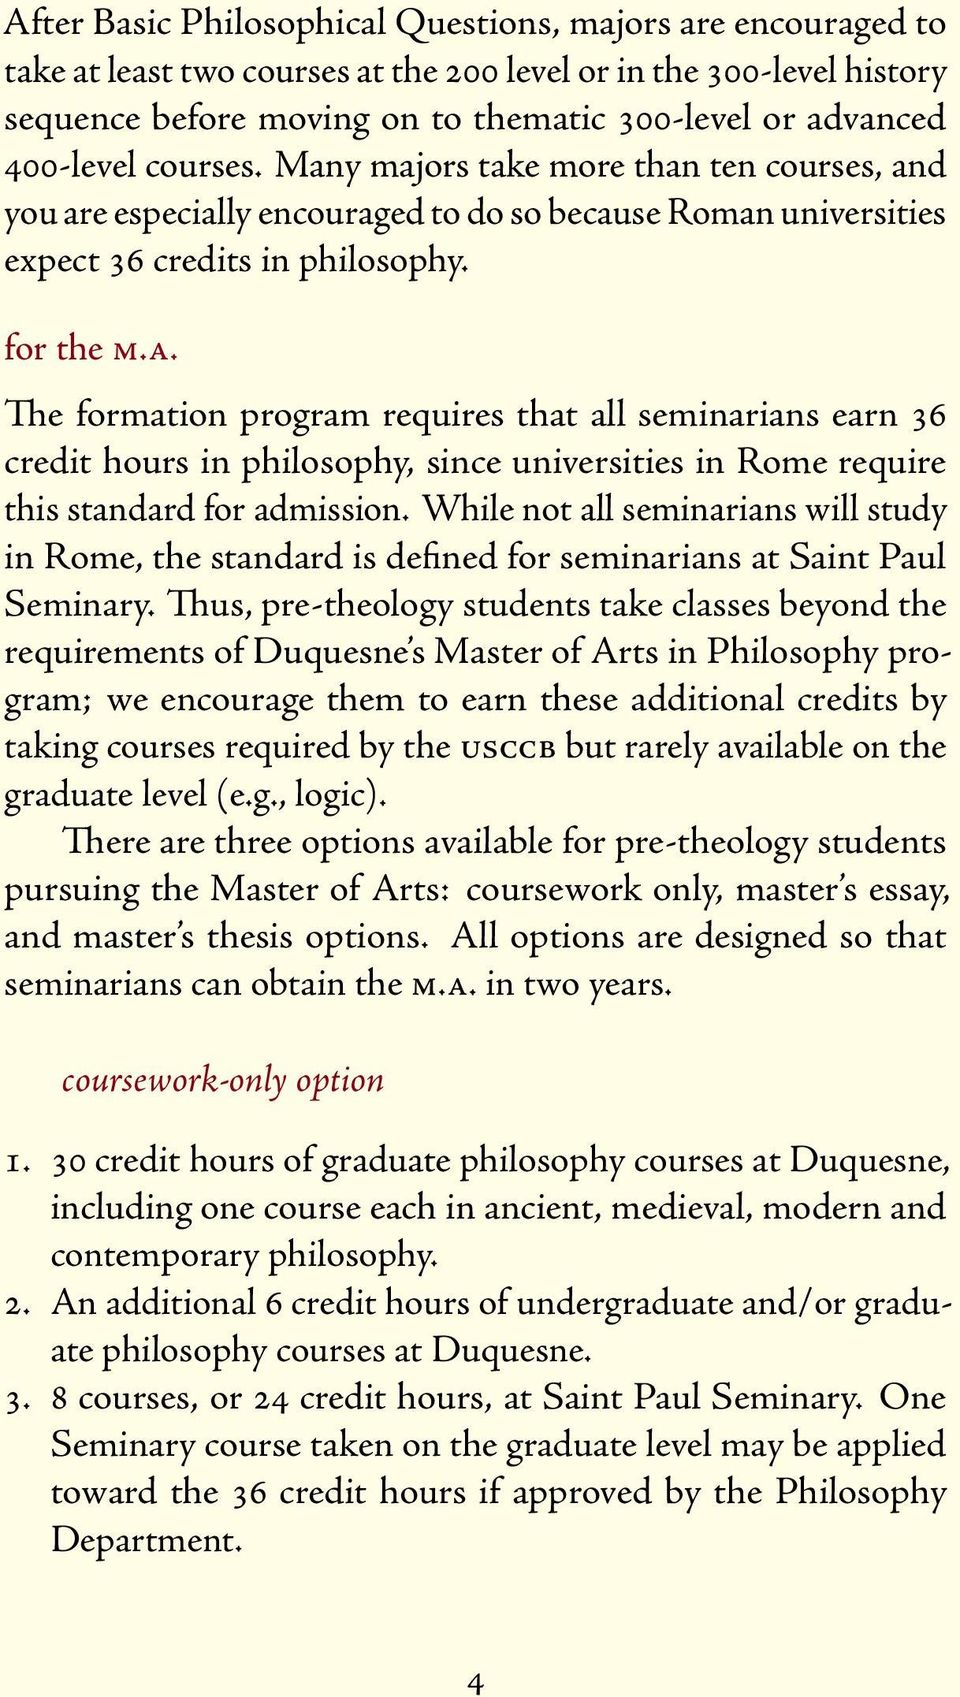 While not all seminarians will study in Rome, the standard is defined for seminarians at Saint Paul Seminary.